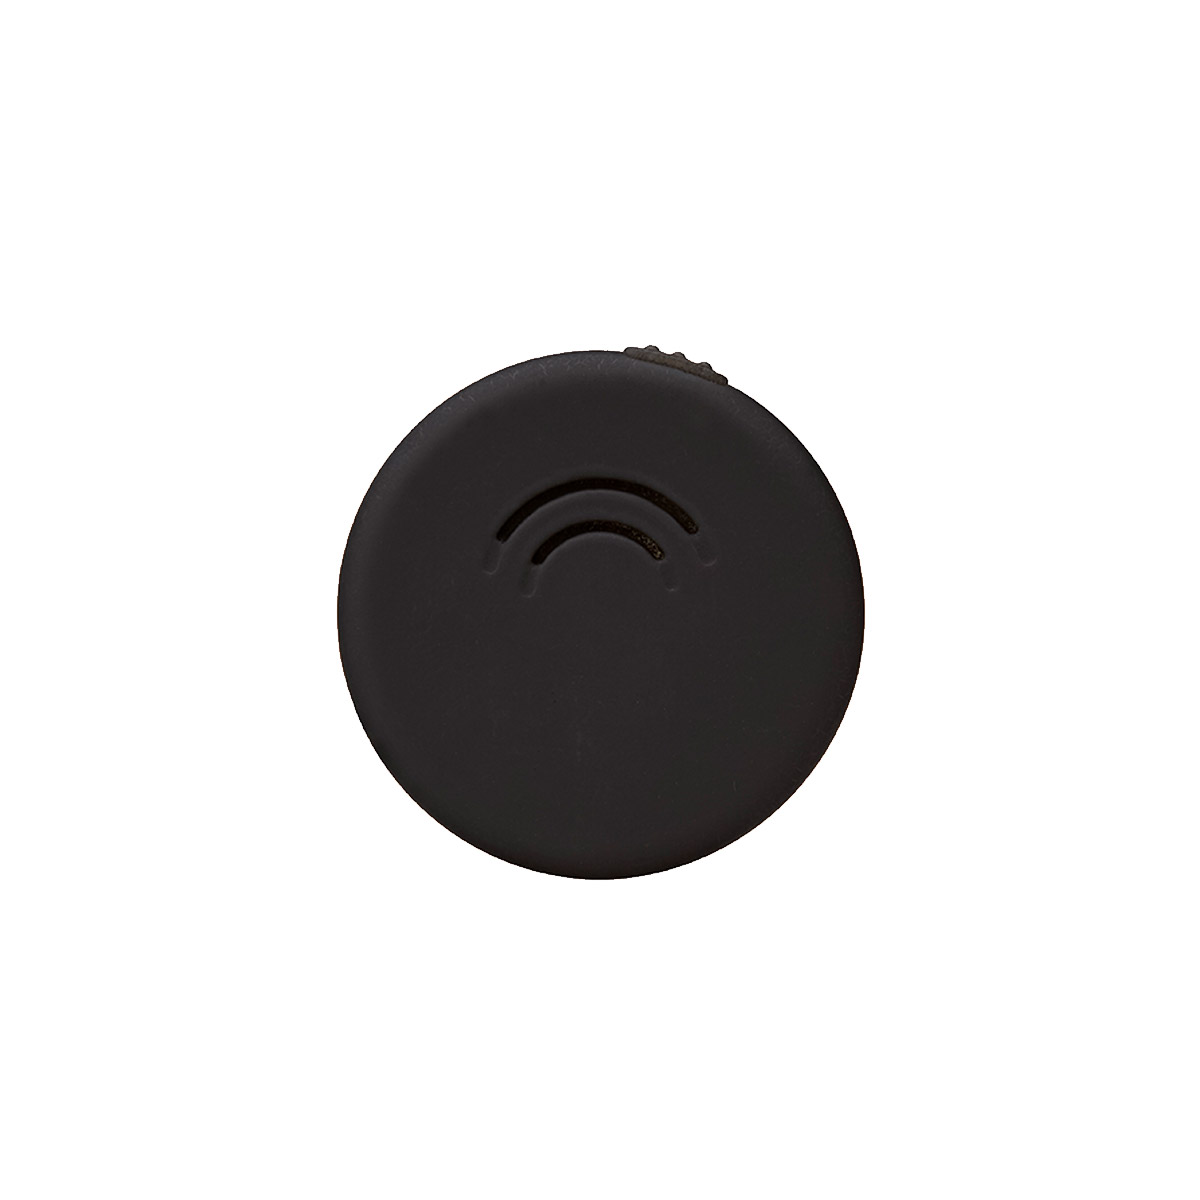 Wholesale cell phone accessory Orbit - Stick-On Bluetooth Tracking Device - Black